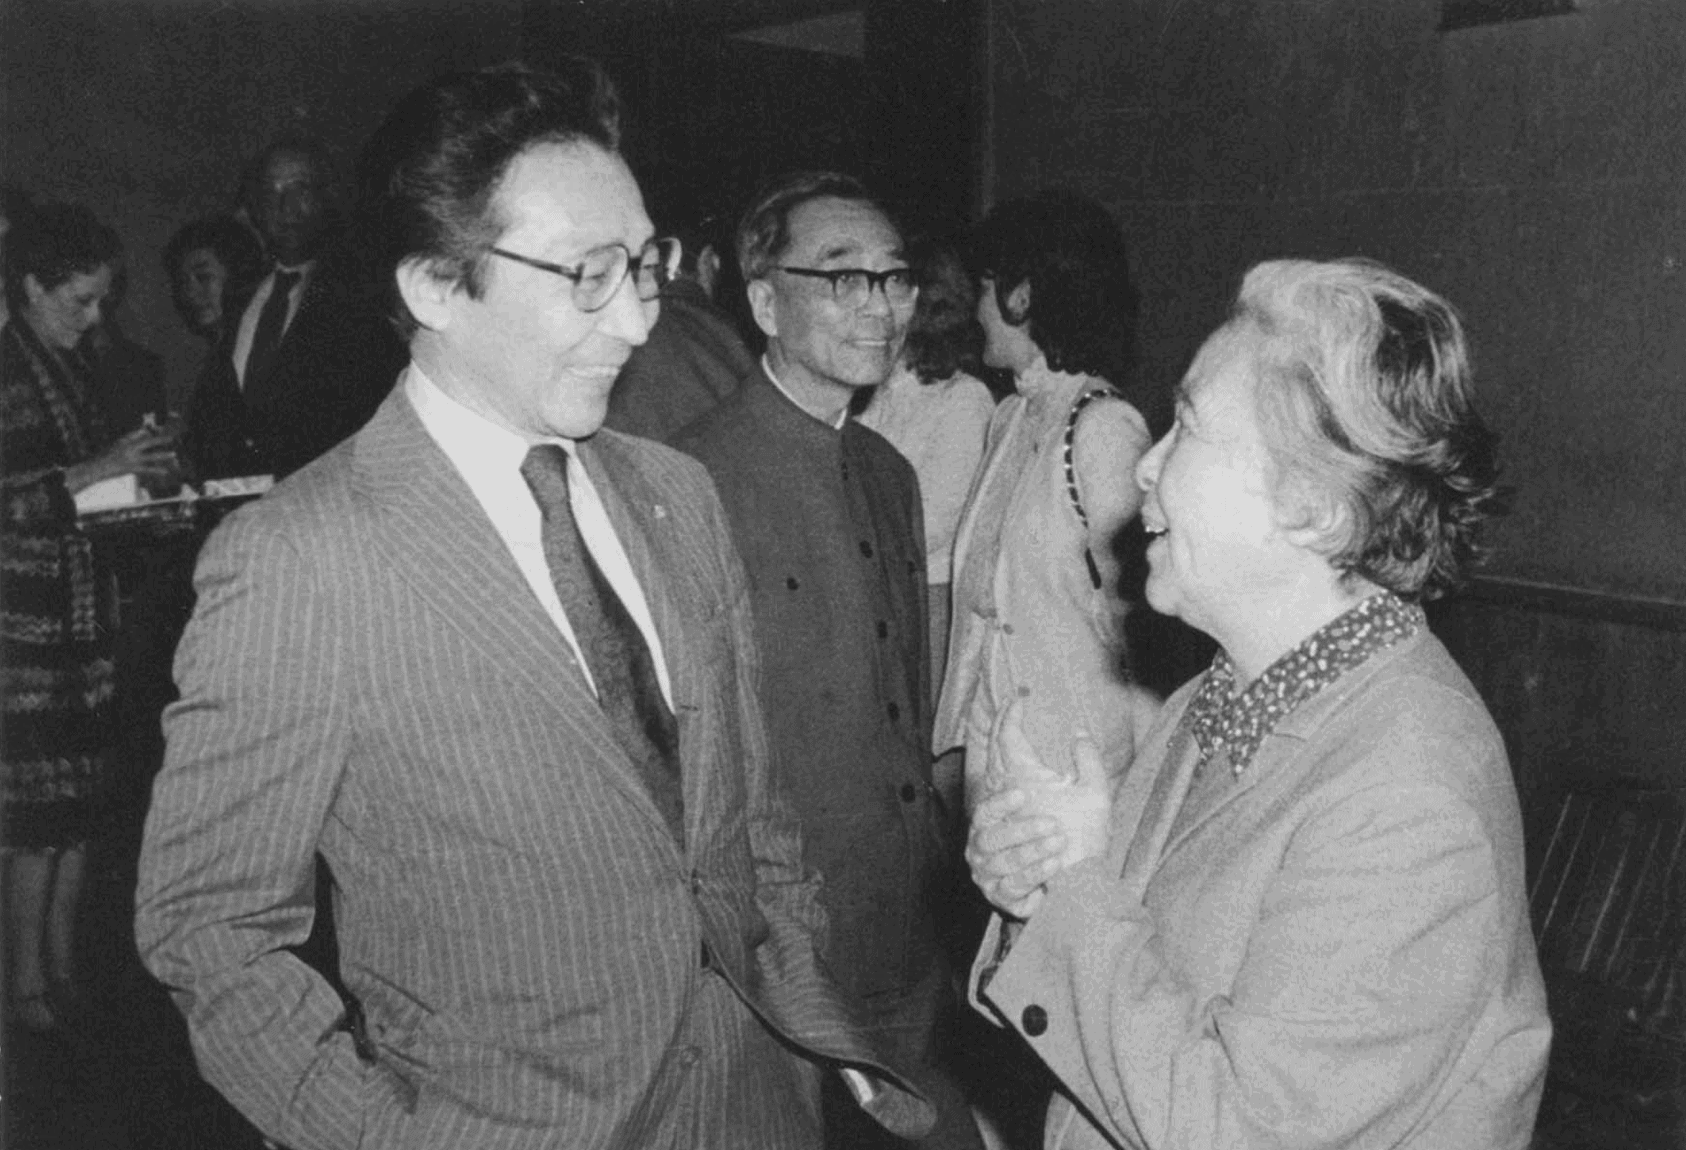 Writer Ding Ling with Chou Wen-chung